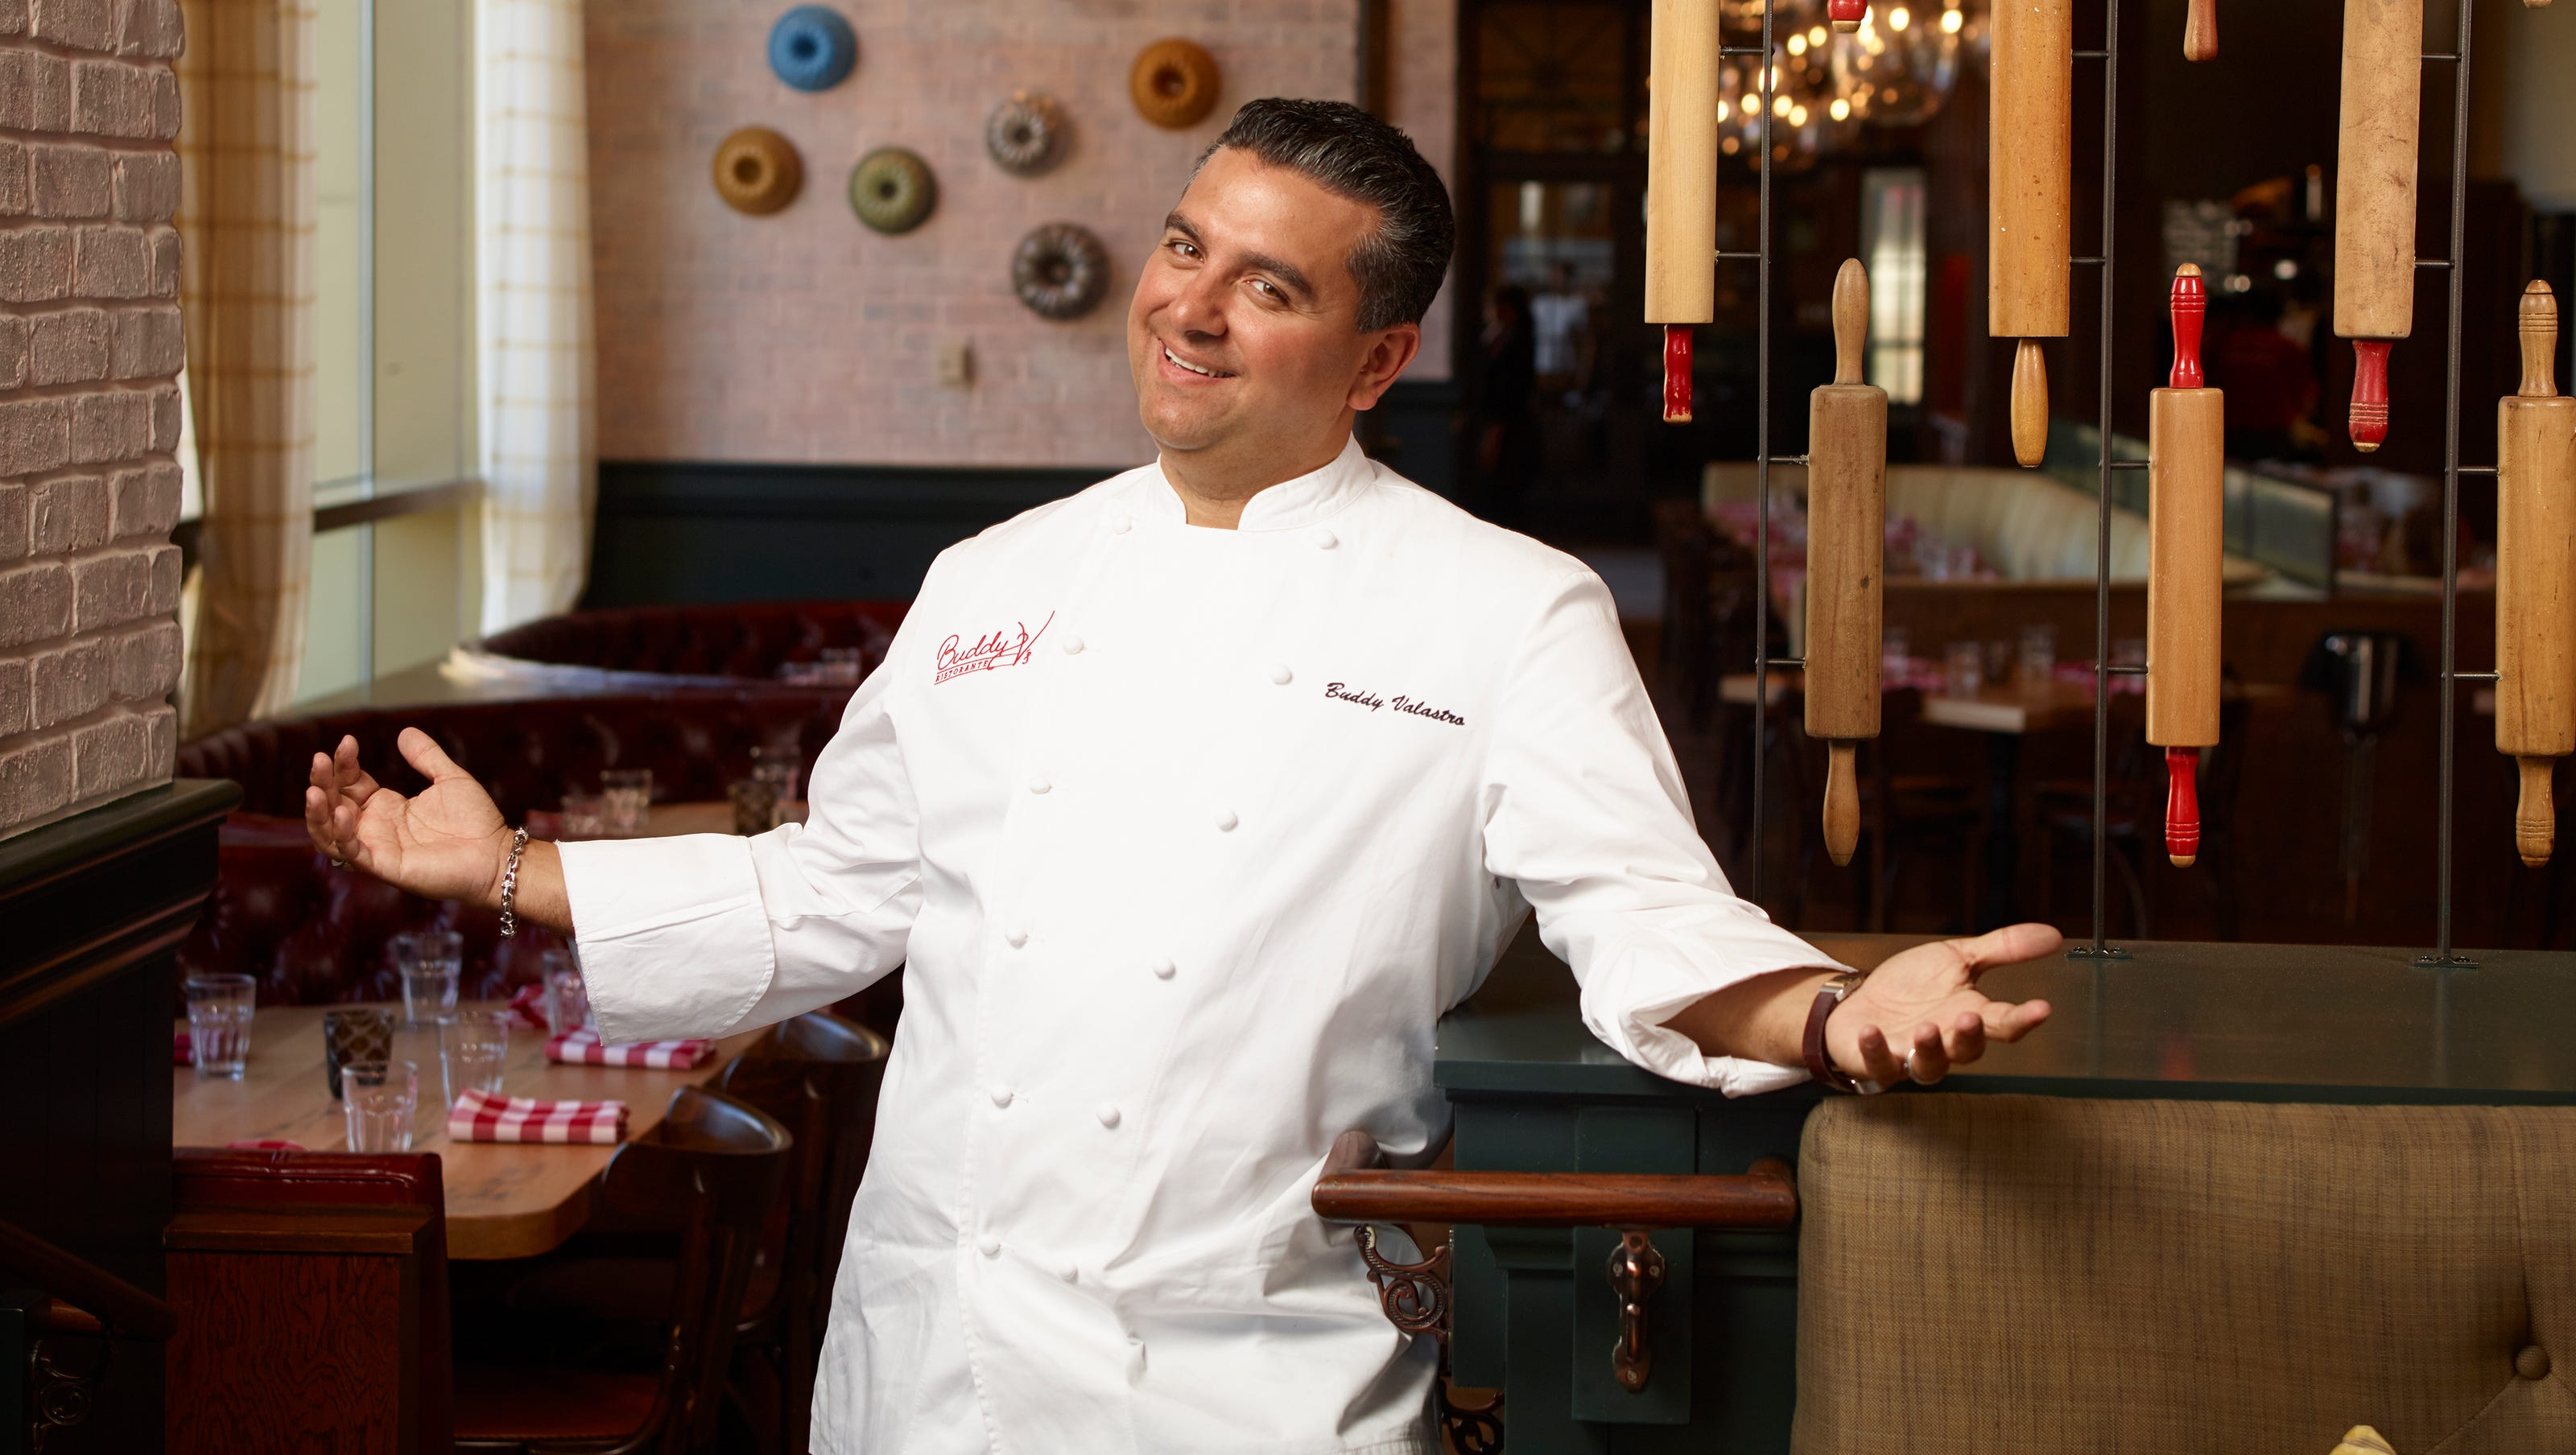 'Cake Boss' Buddy Valastro gives update on his hand: 'I've got about 75% of my strength back'